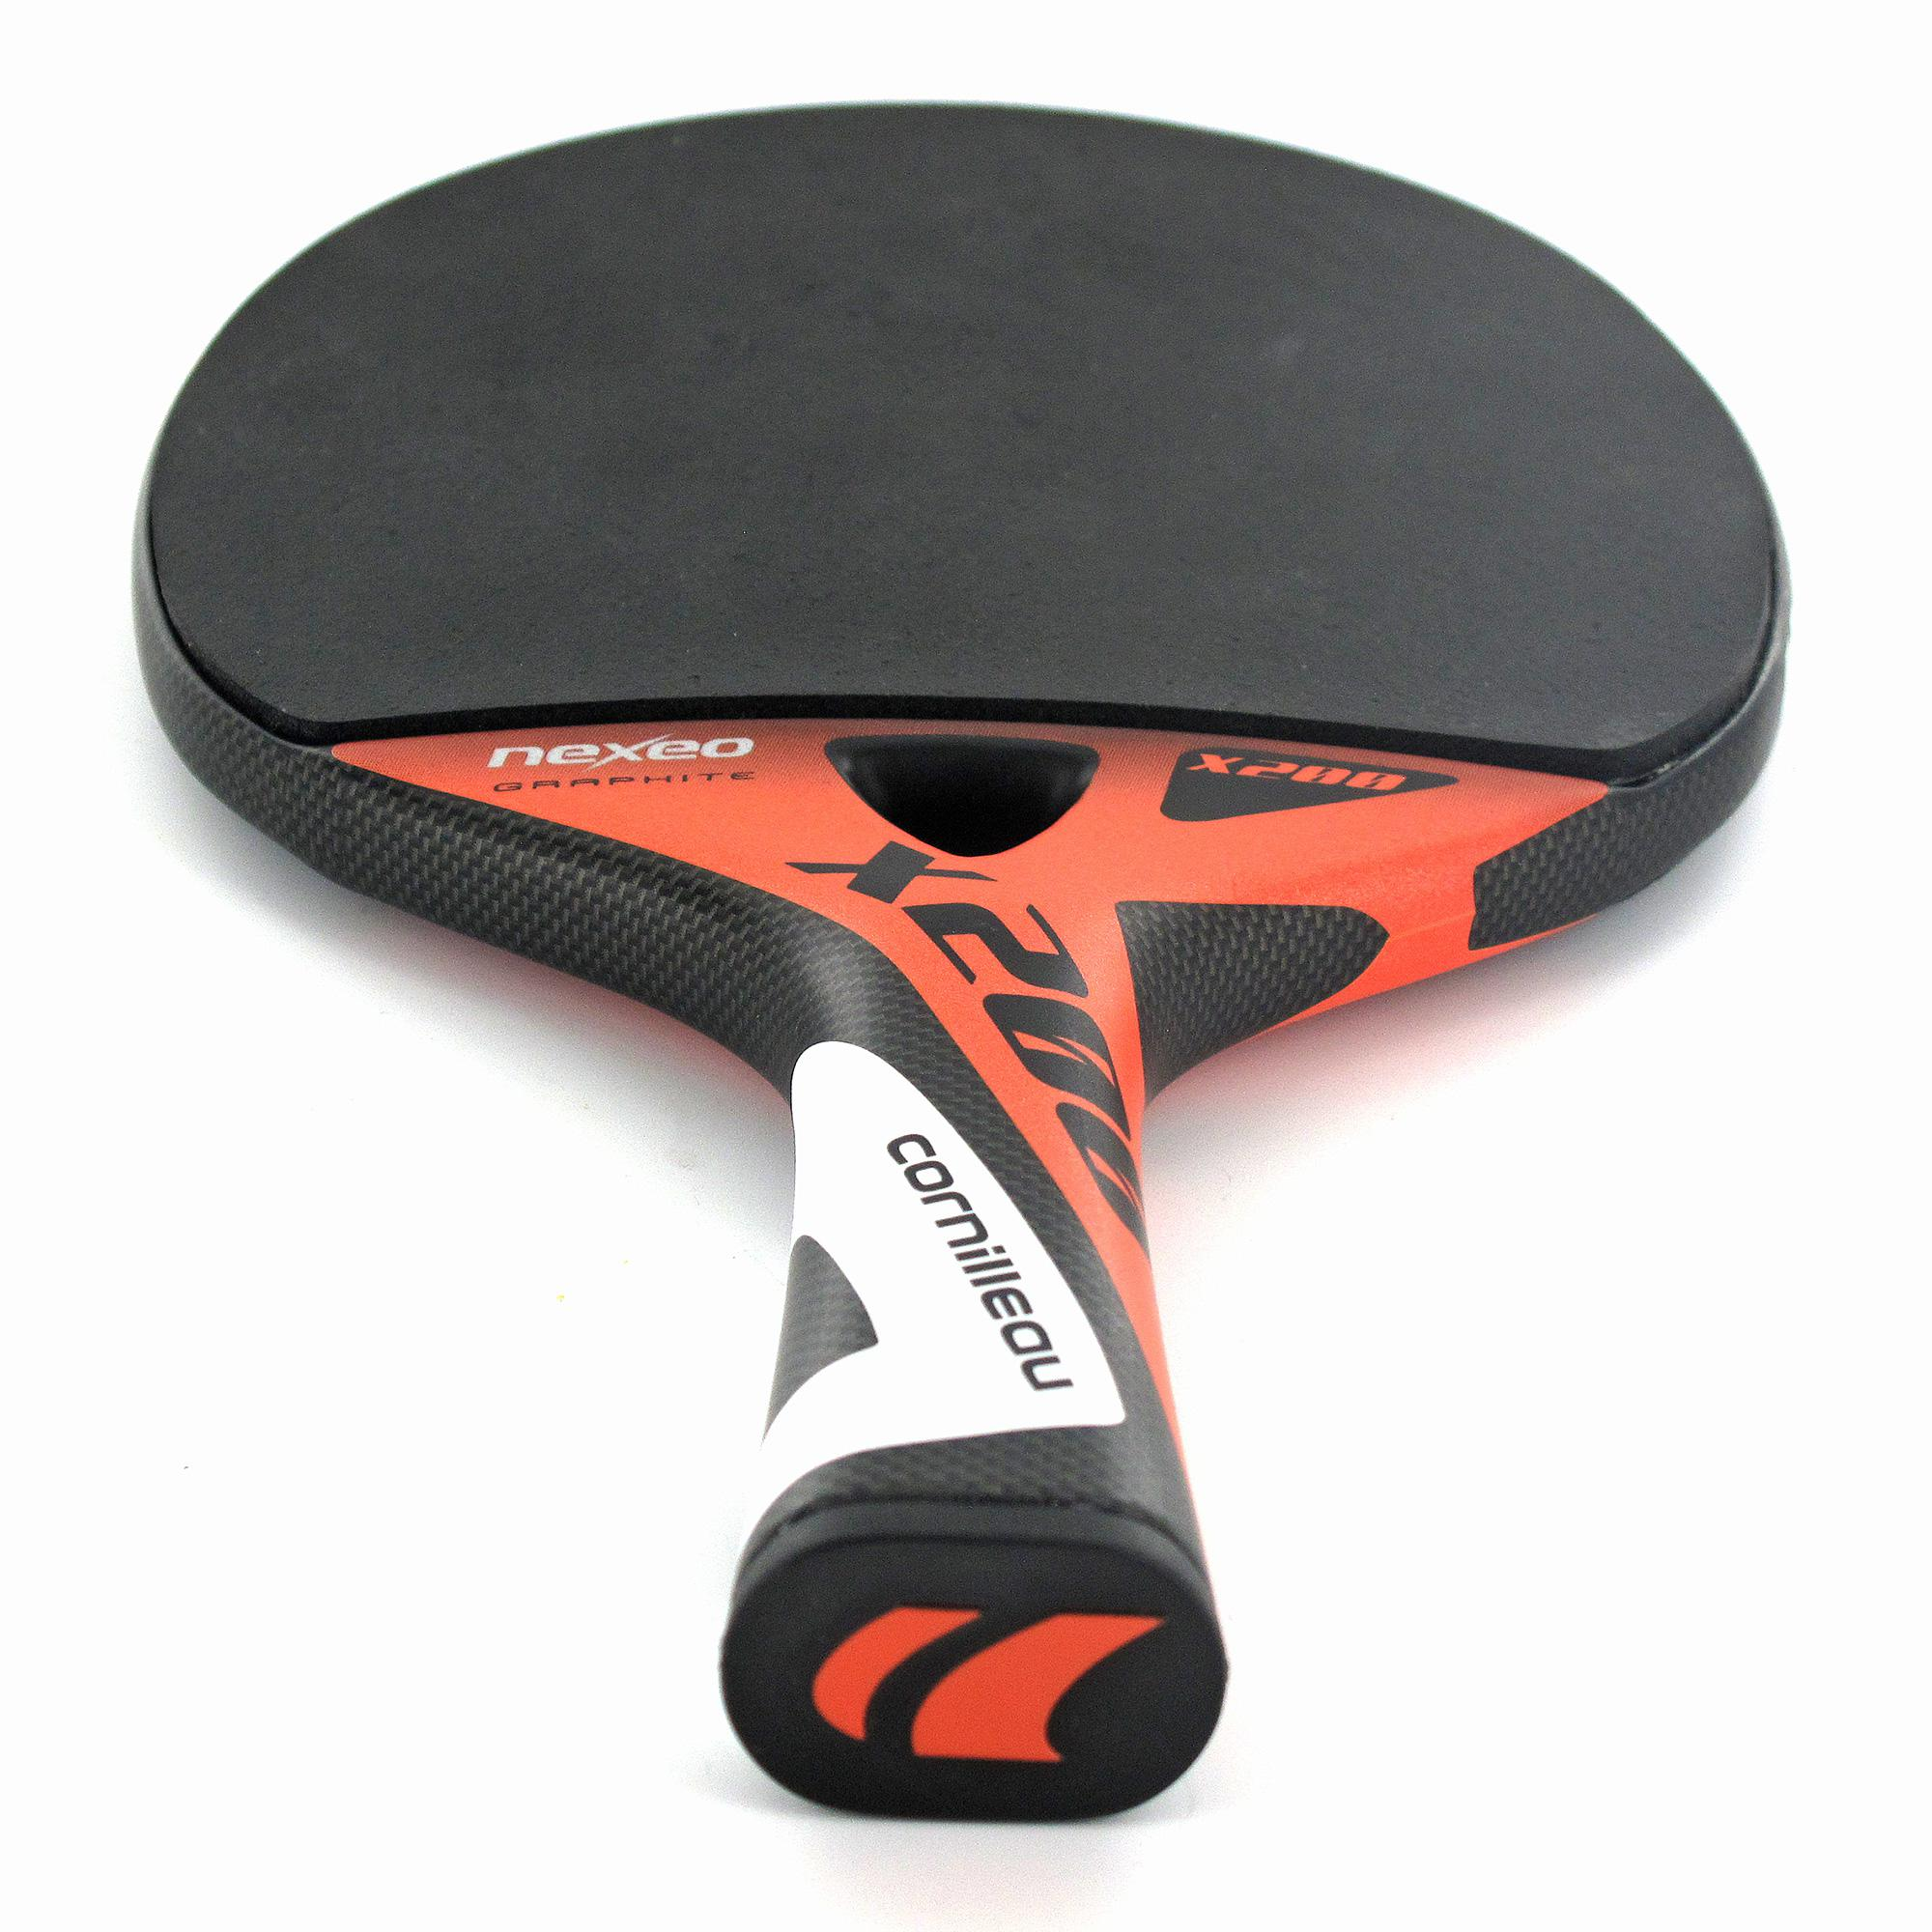 table tennis bats. 20%. cornilleau nexeo x200 graphite table tennis bat bats